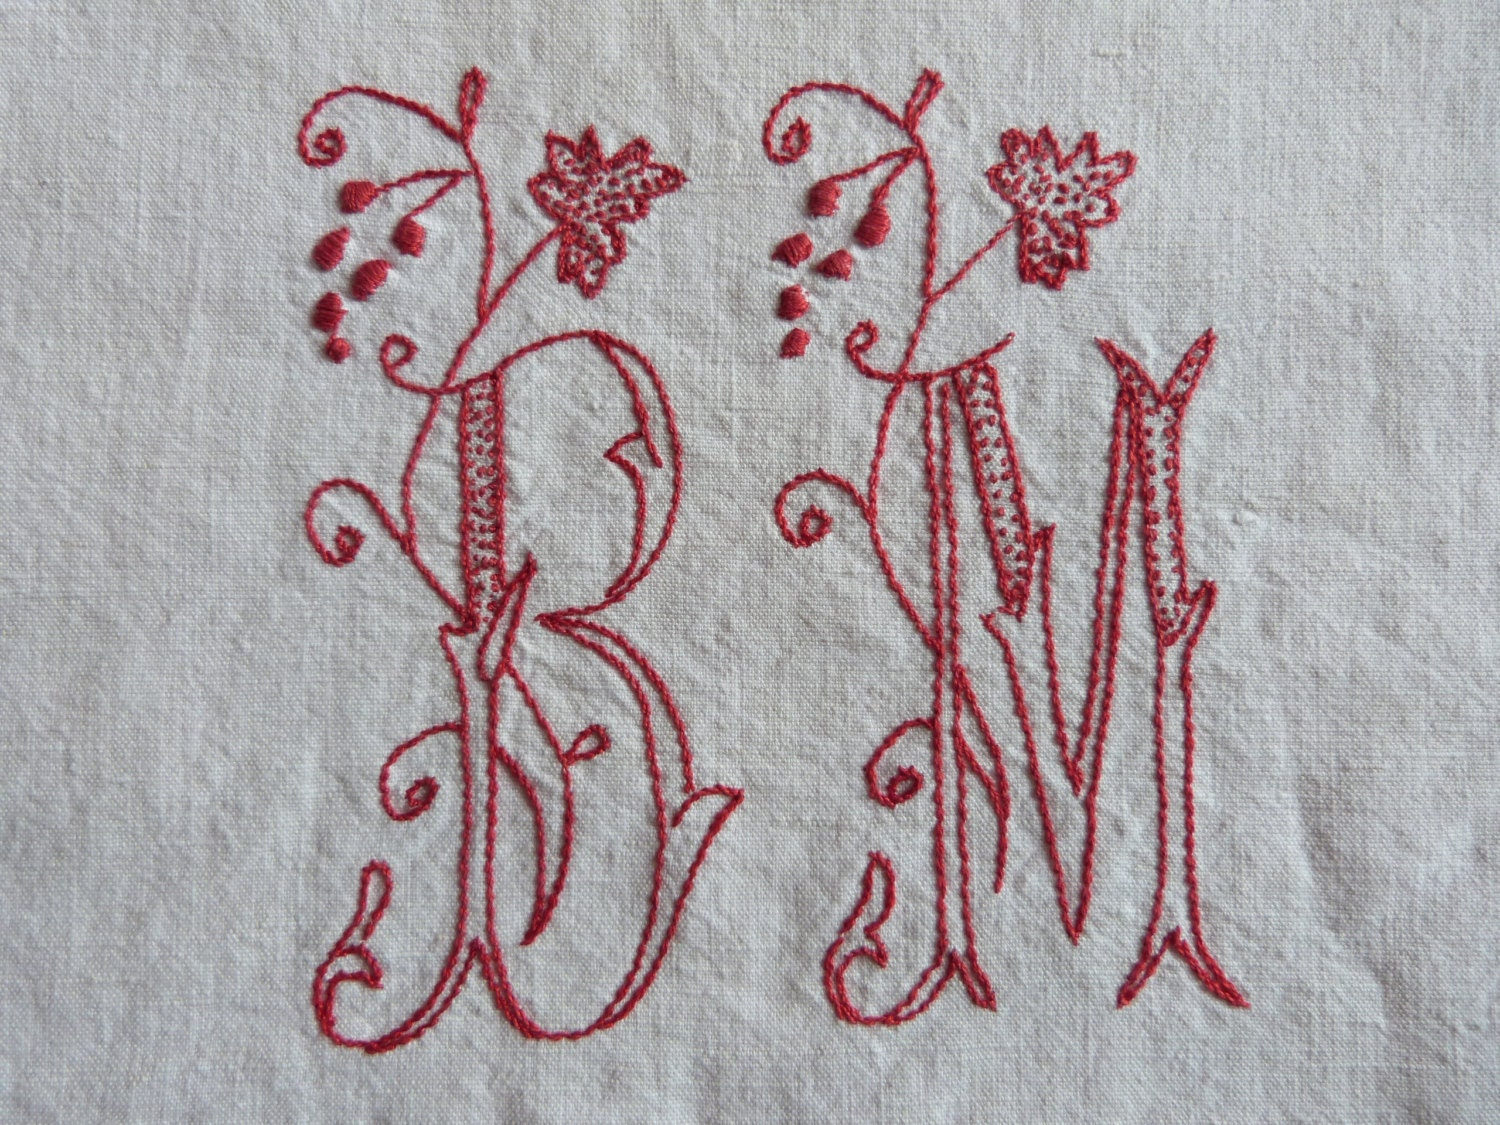 Antique French linen dowry sheet, hand monogrammed wedding linens w red monograms BM w floral embroidery, heirloom bed linens made in France - MyFrenchAntiqueShop